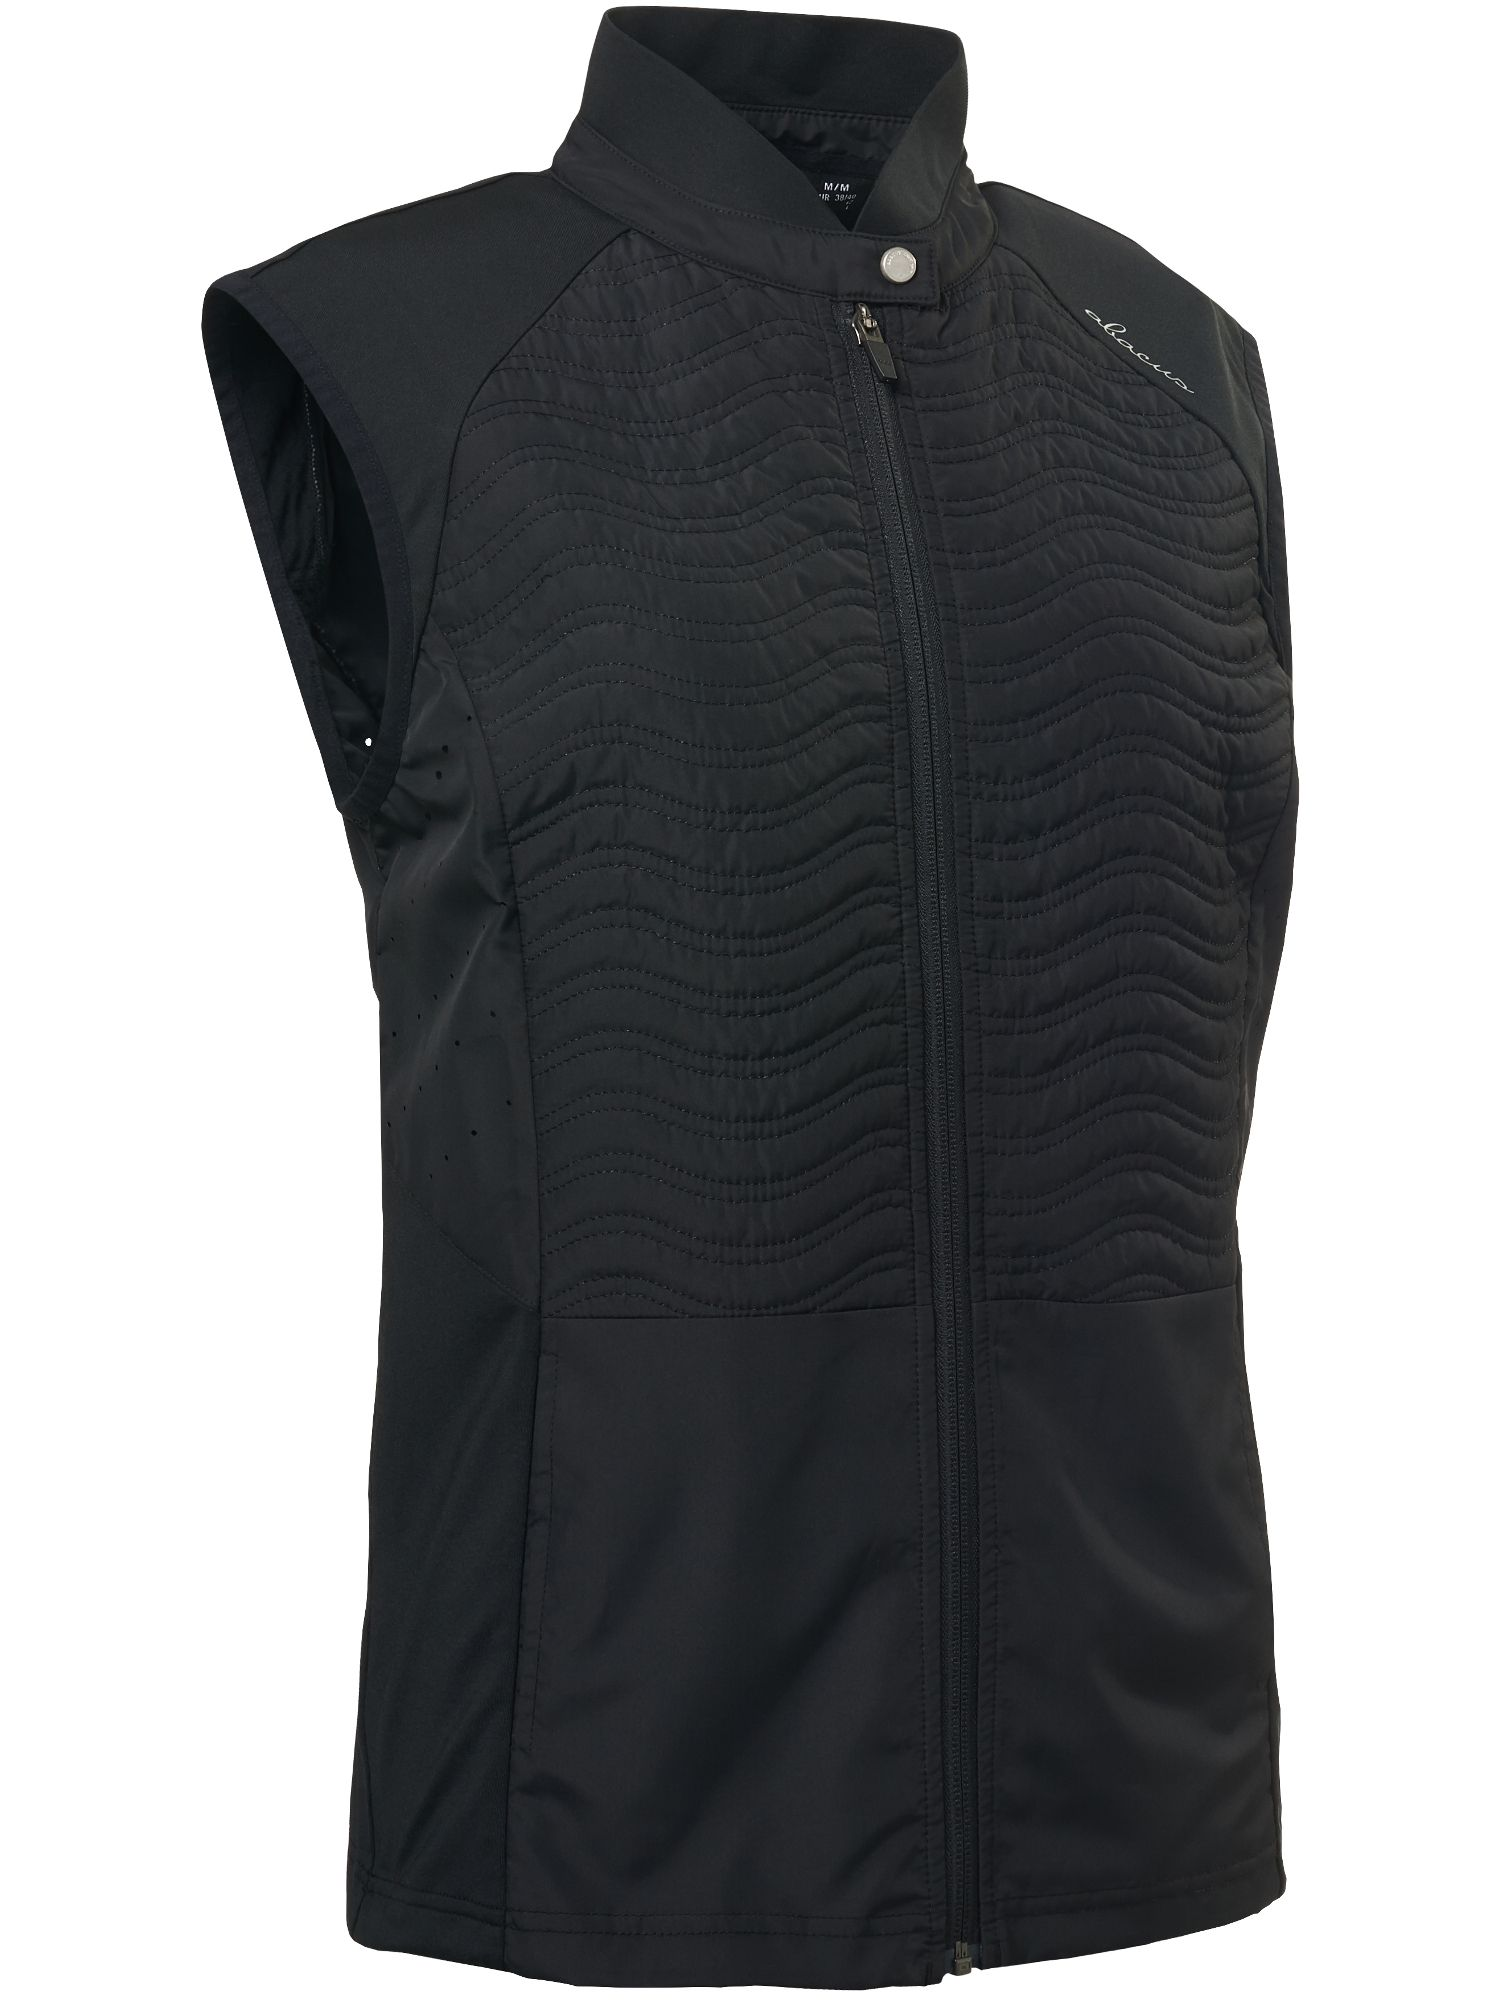 Abacus Troon Hybrid Gilet, Black